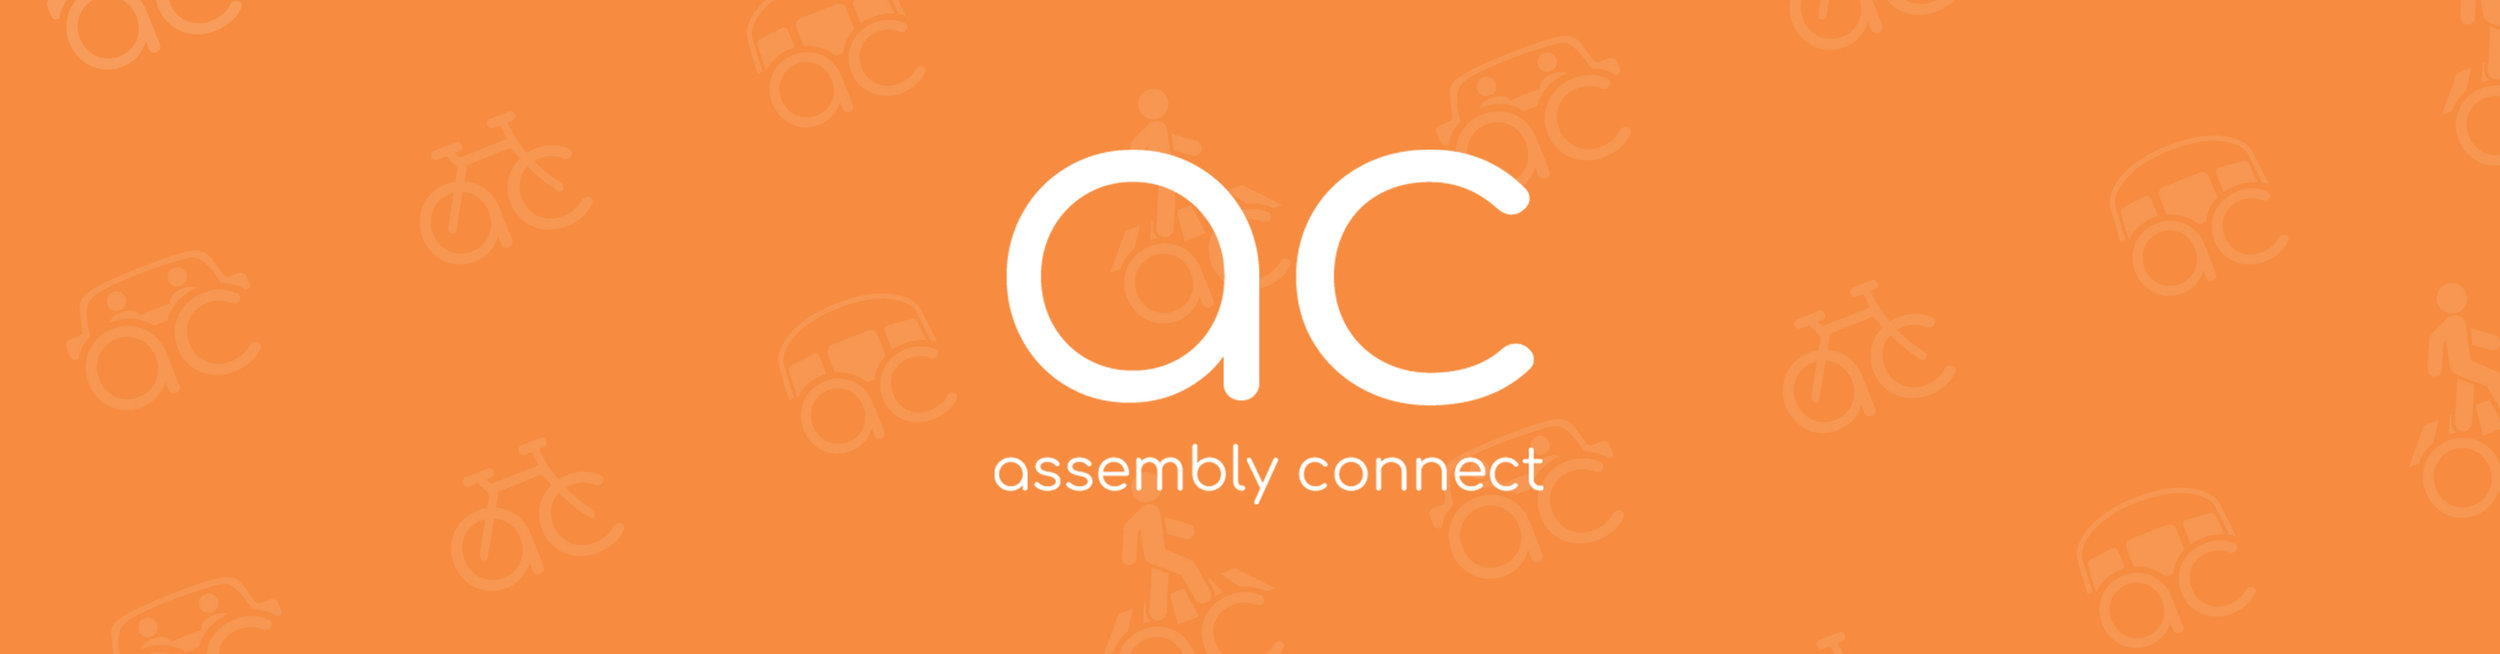 assembly-connect-services-header.jpg